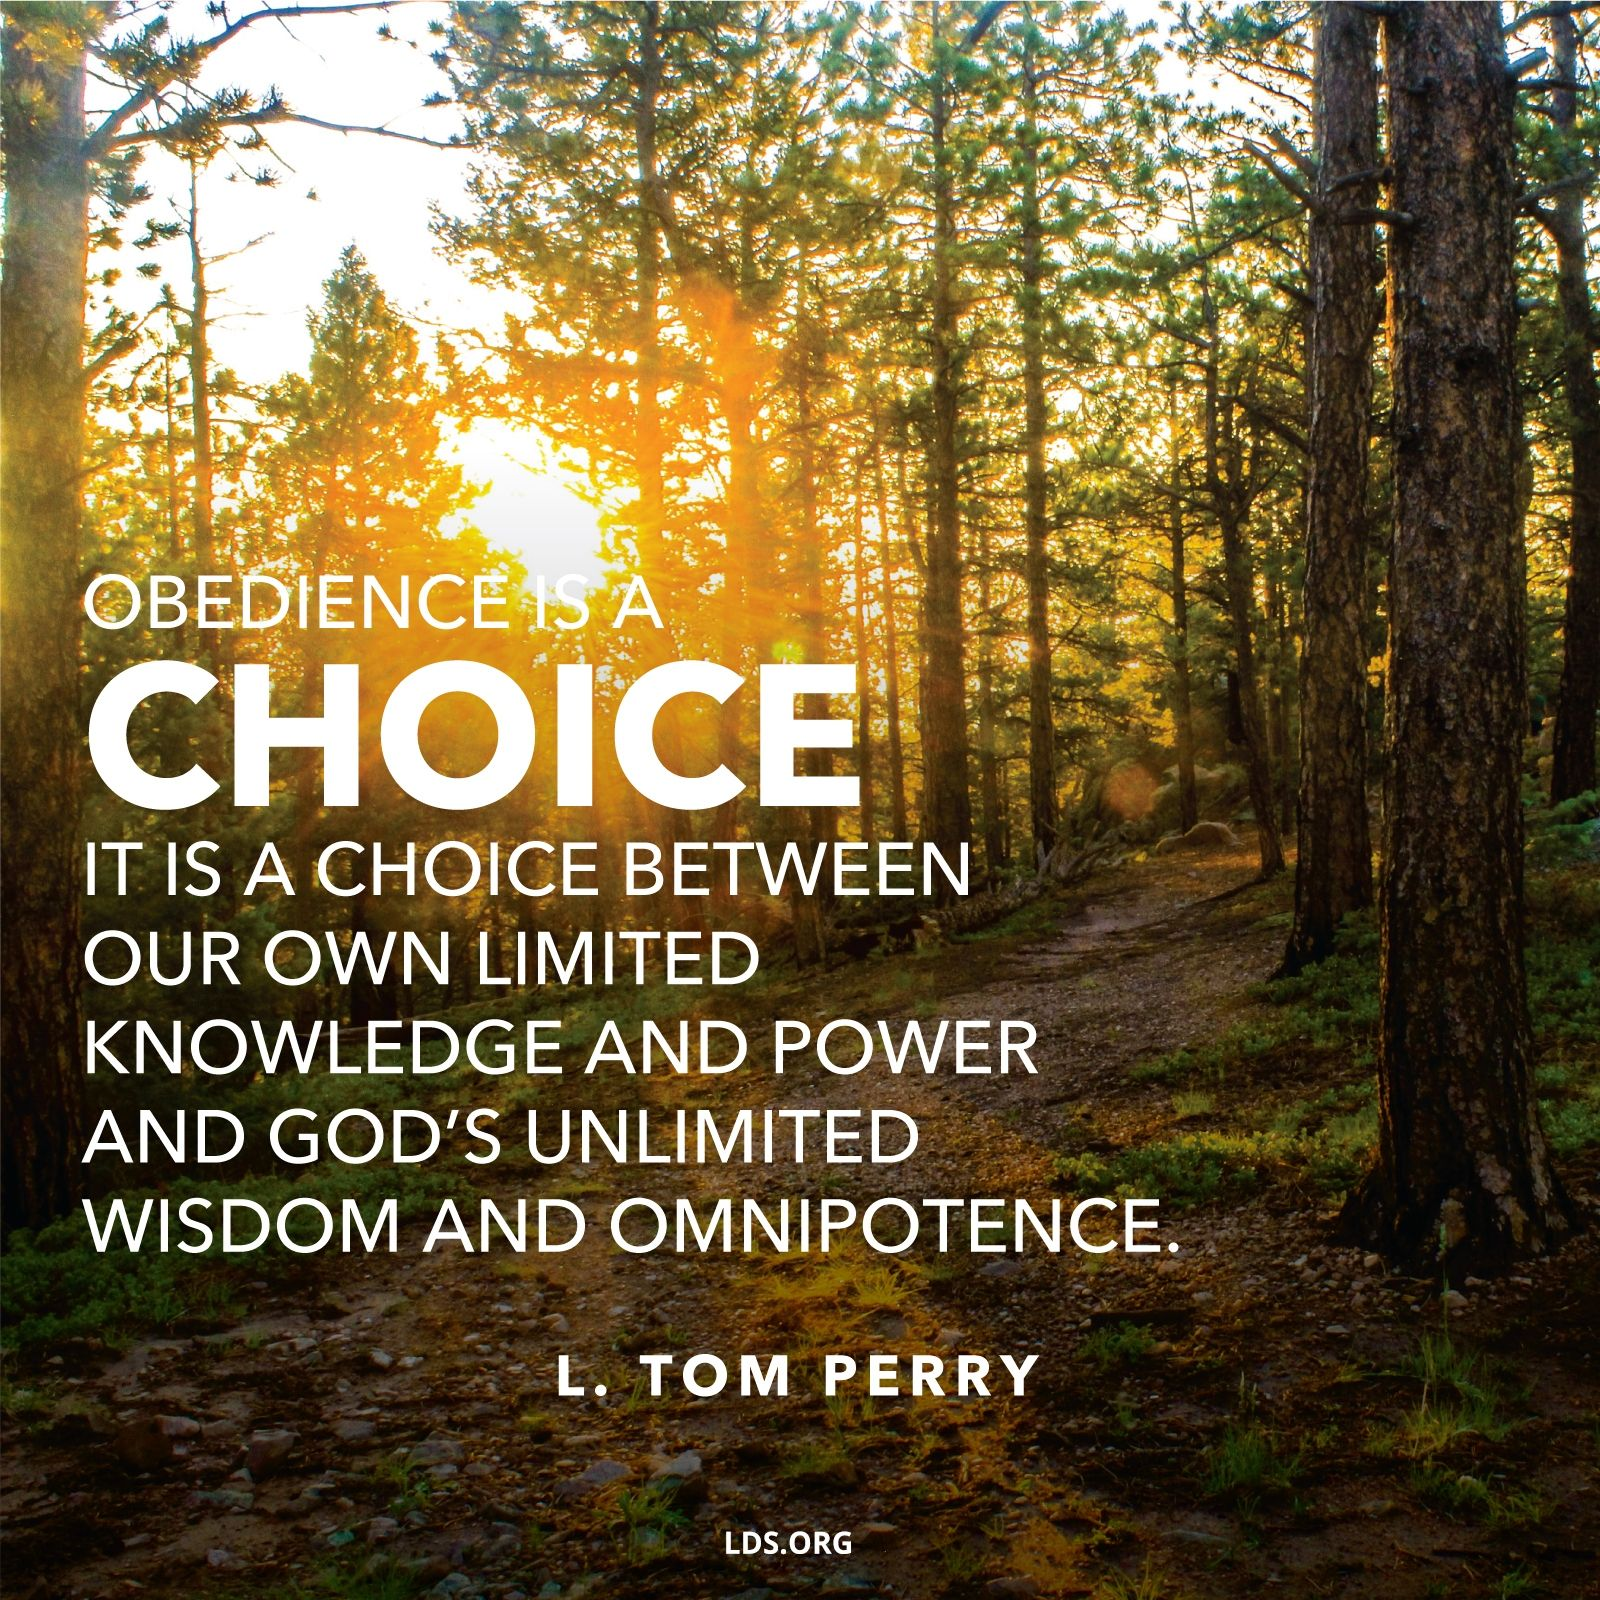 """""""Obedience is a choice. It is between our own limited knowledge and power and God's unlimited wisdom and omnipotence.""""—Elder L. Tom Perry, """"Obedience through Our Faithfulness"""""""